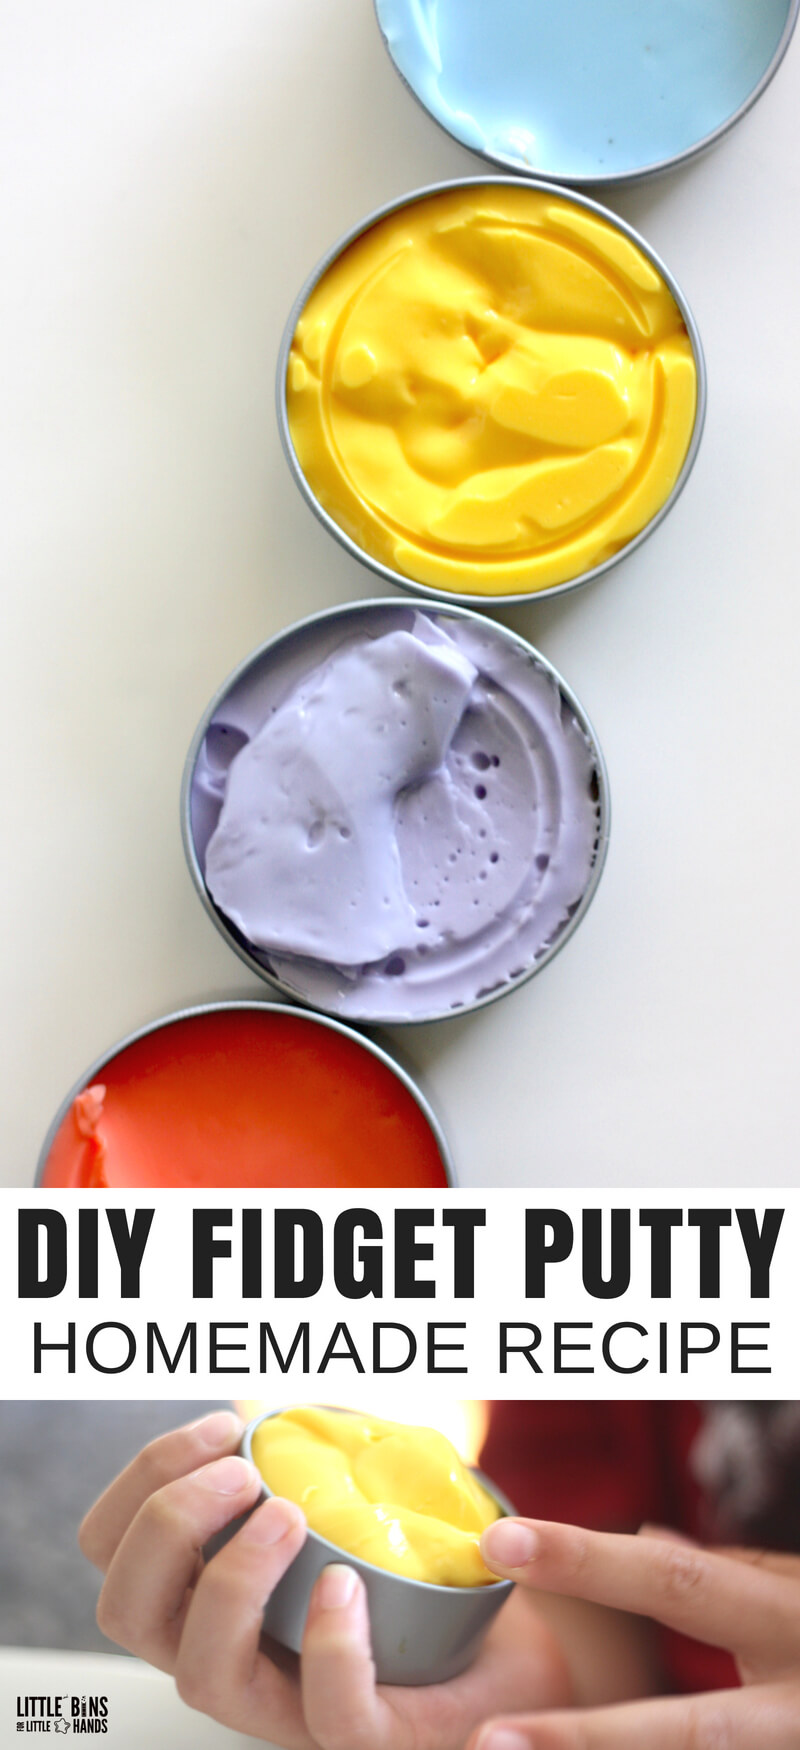 Make your own homemade fidget putty recipe for less make your own homemade fidget putty recipe ccuart Gallery